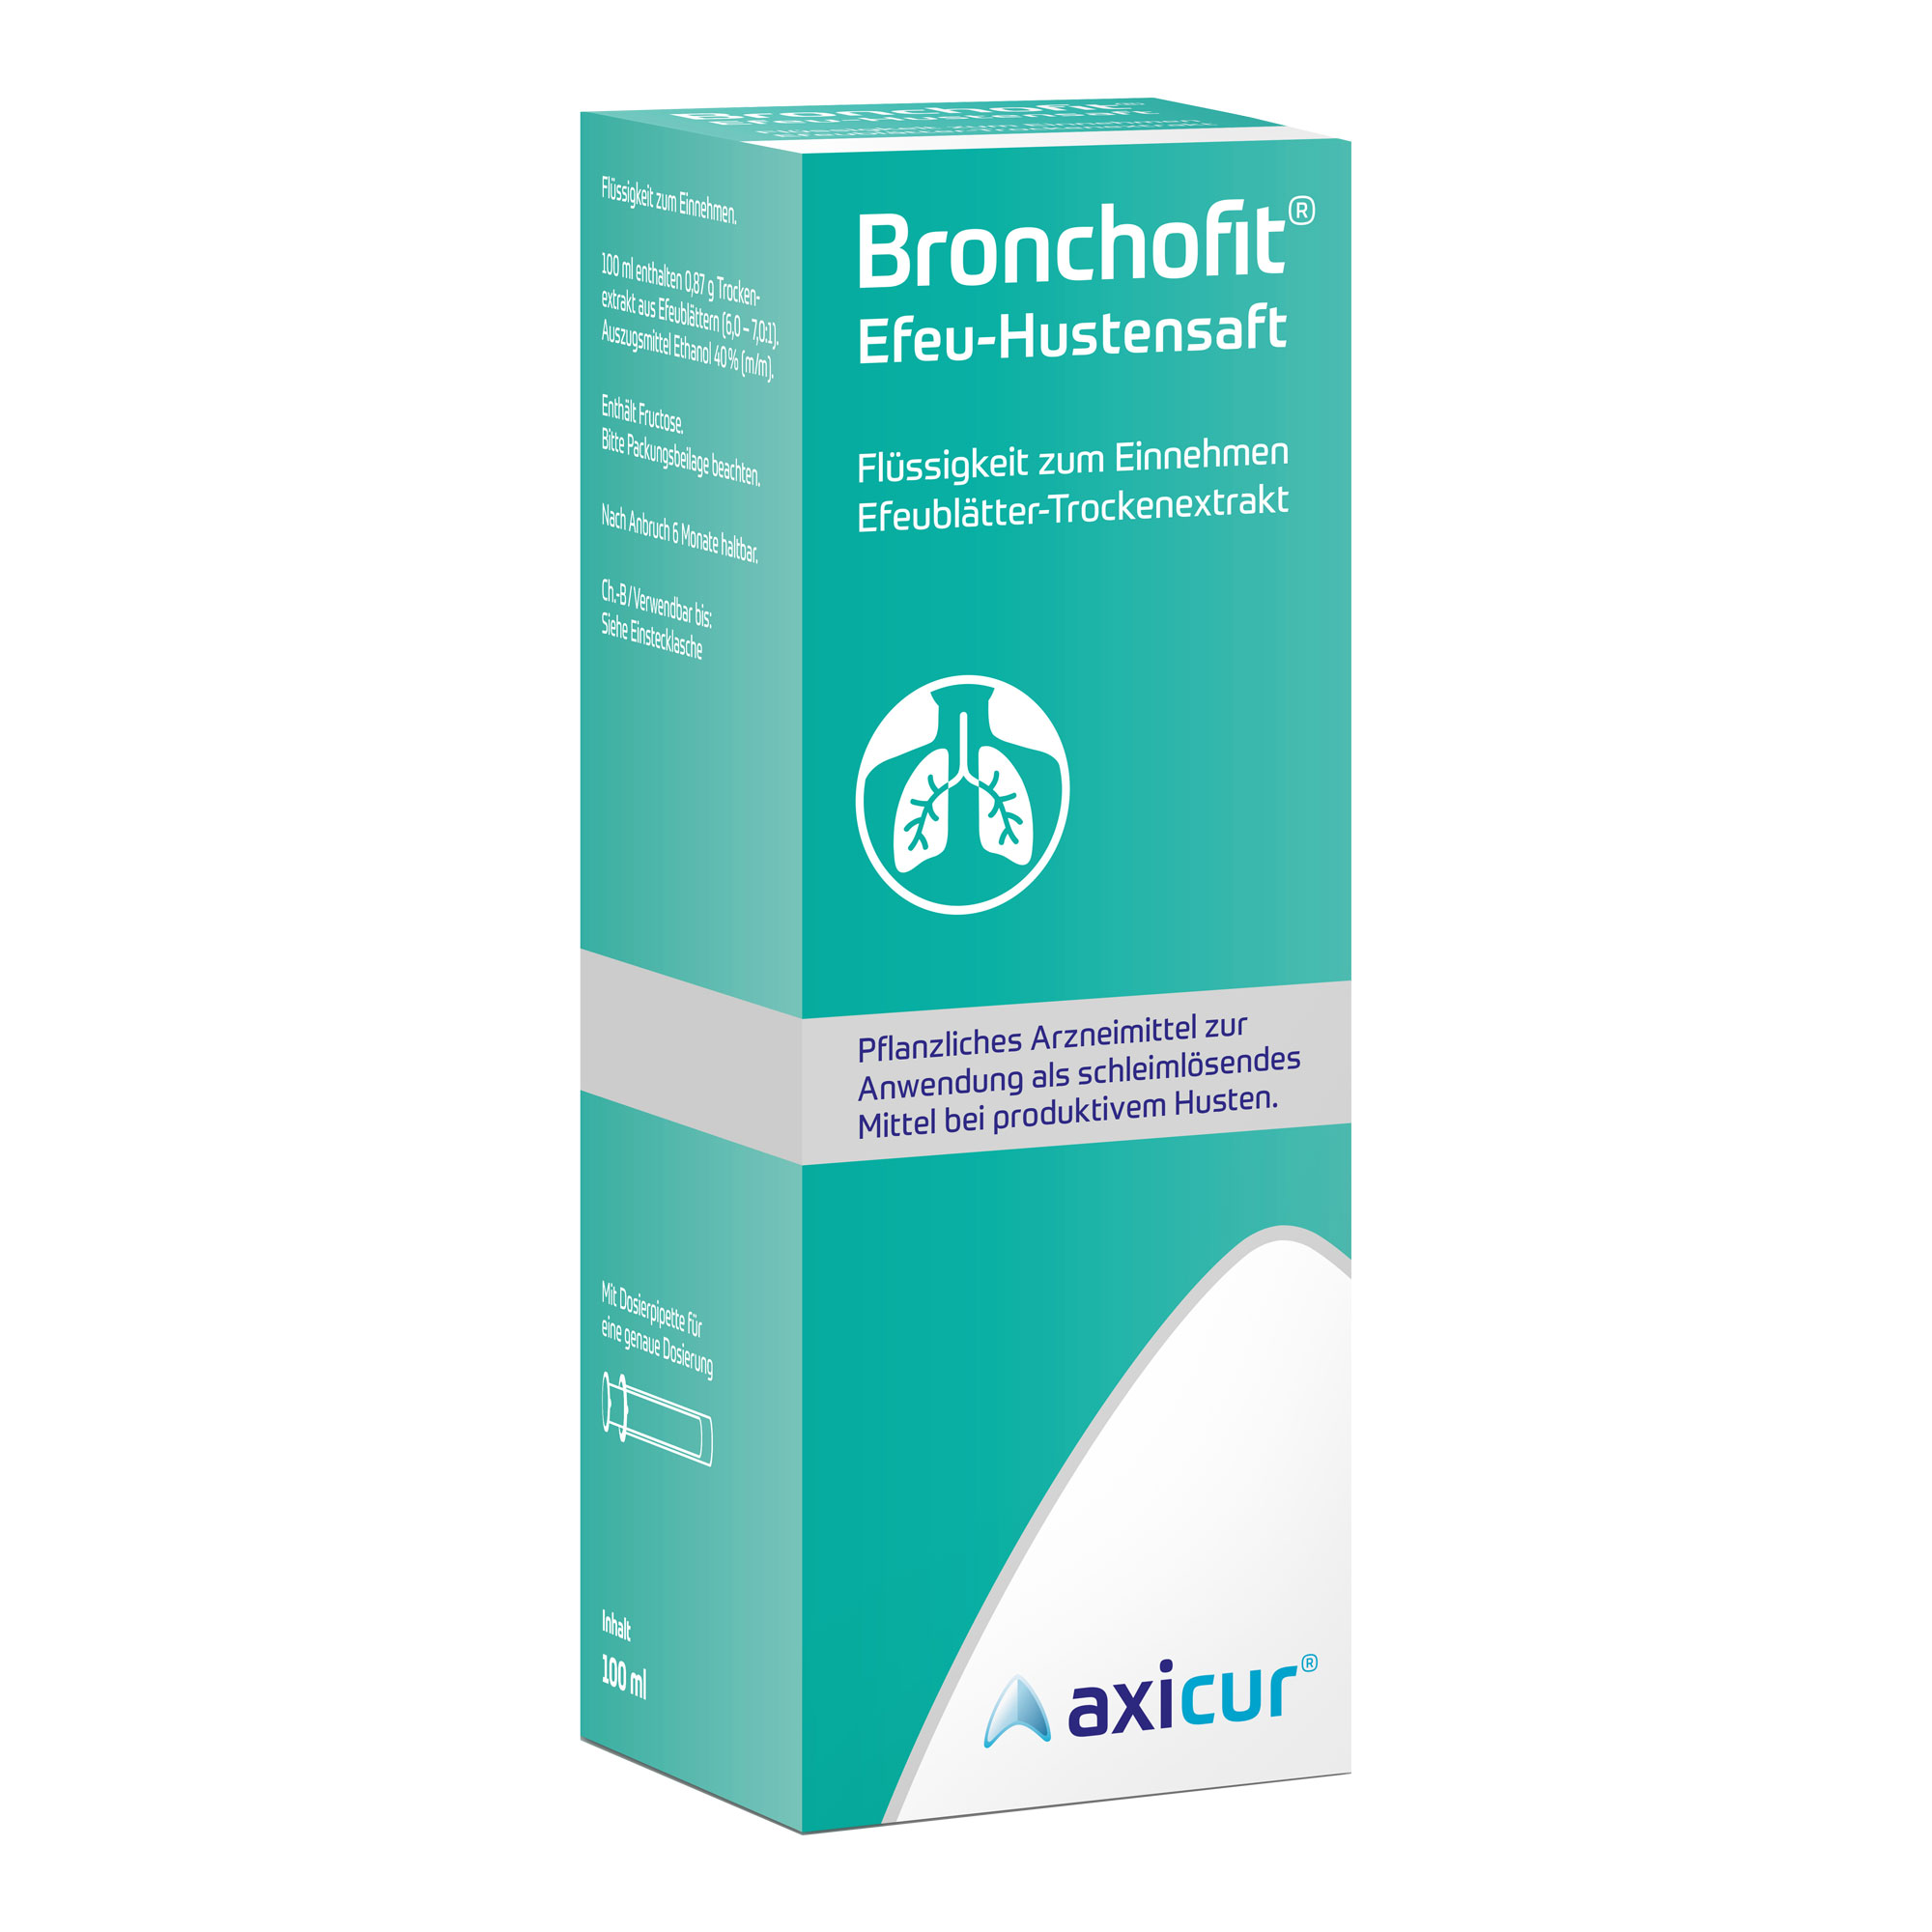 Bronchofit Efeu-Hustensaft 8,7 mg/ml